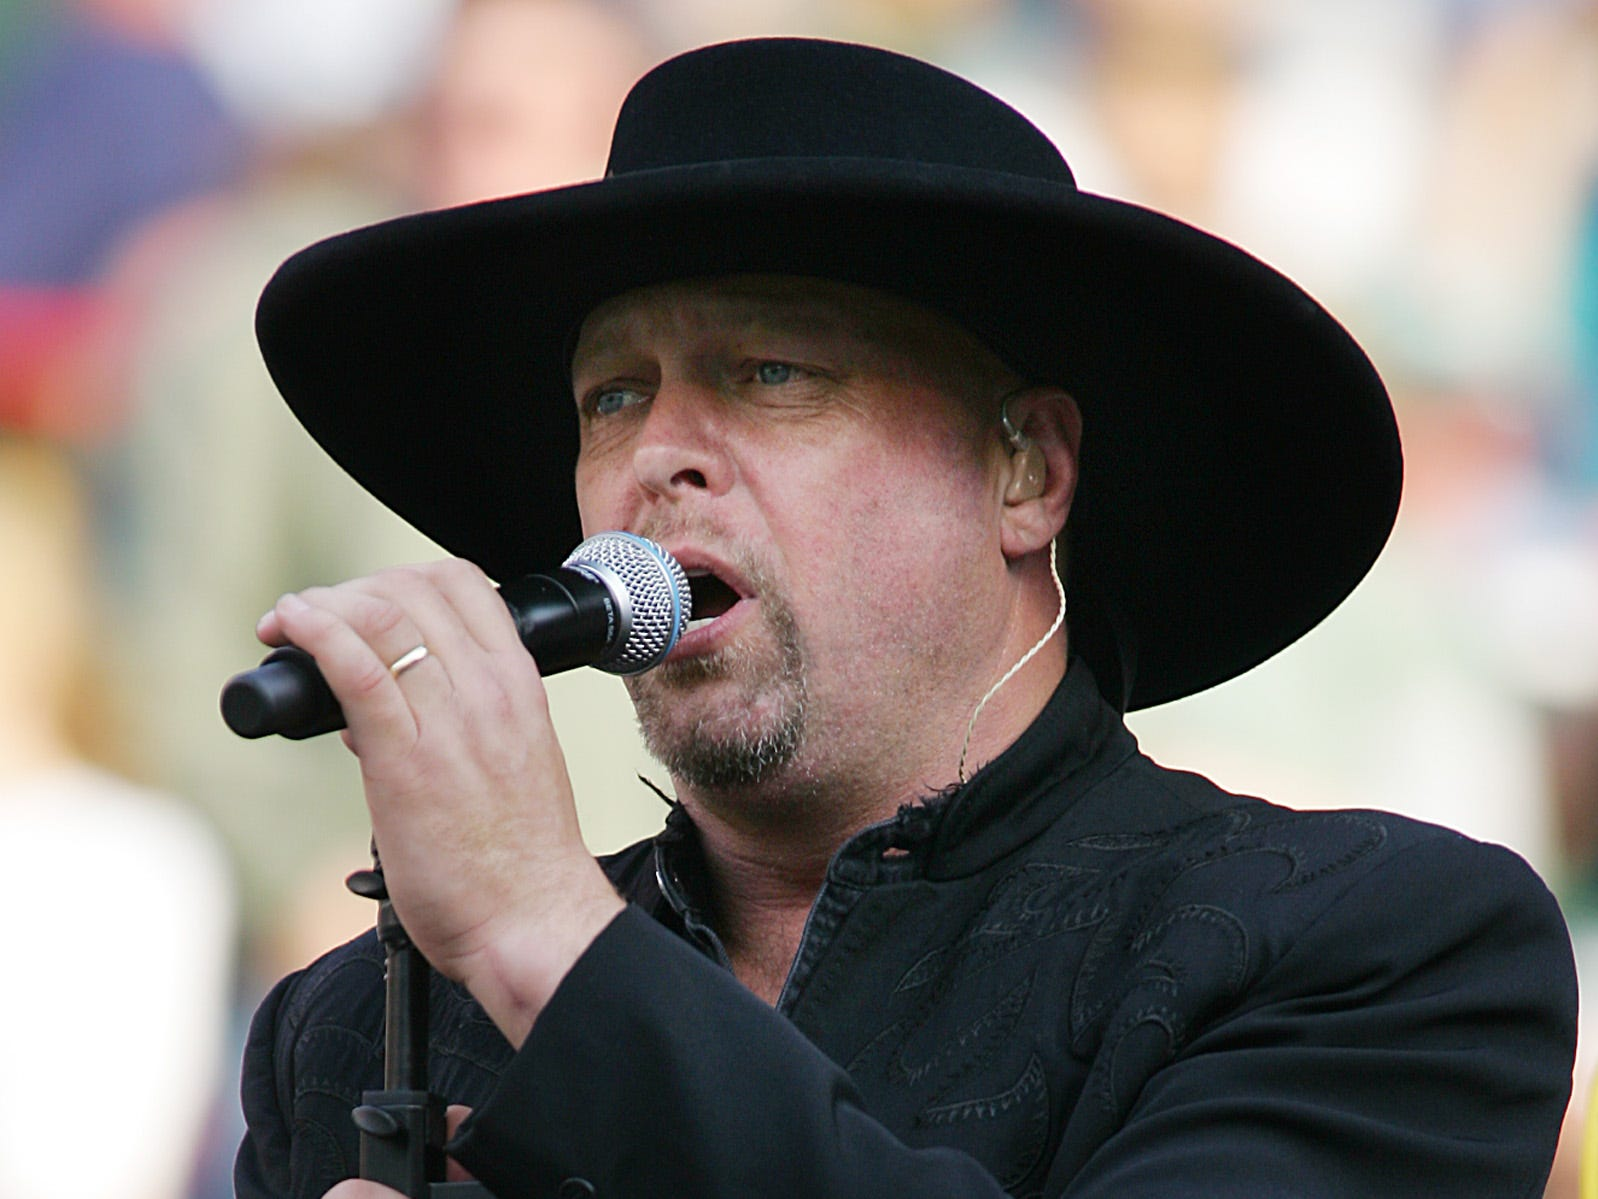 Montgomery Gentry is scheduled to play the Budweiser Forever Country Stage at CMA Fest 2019.